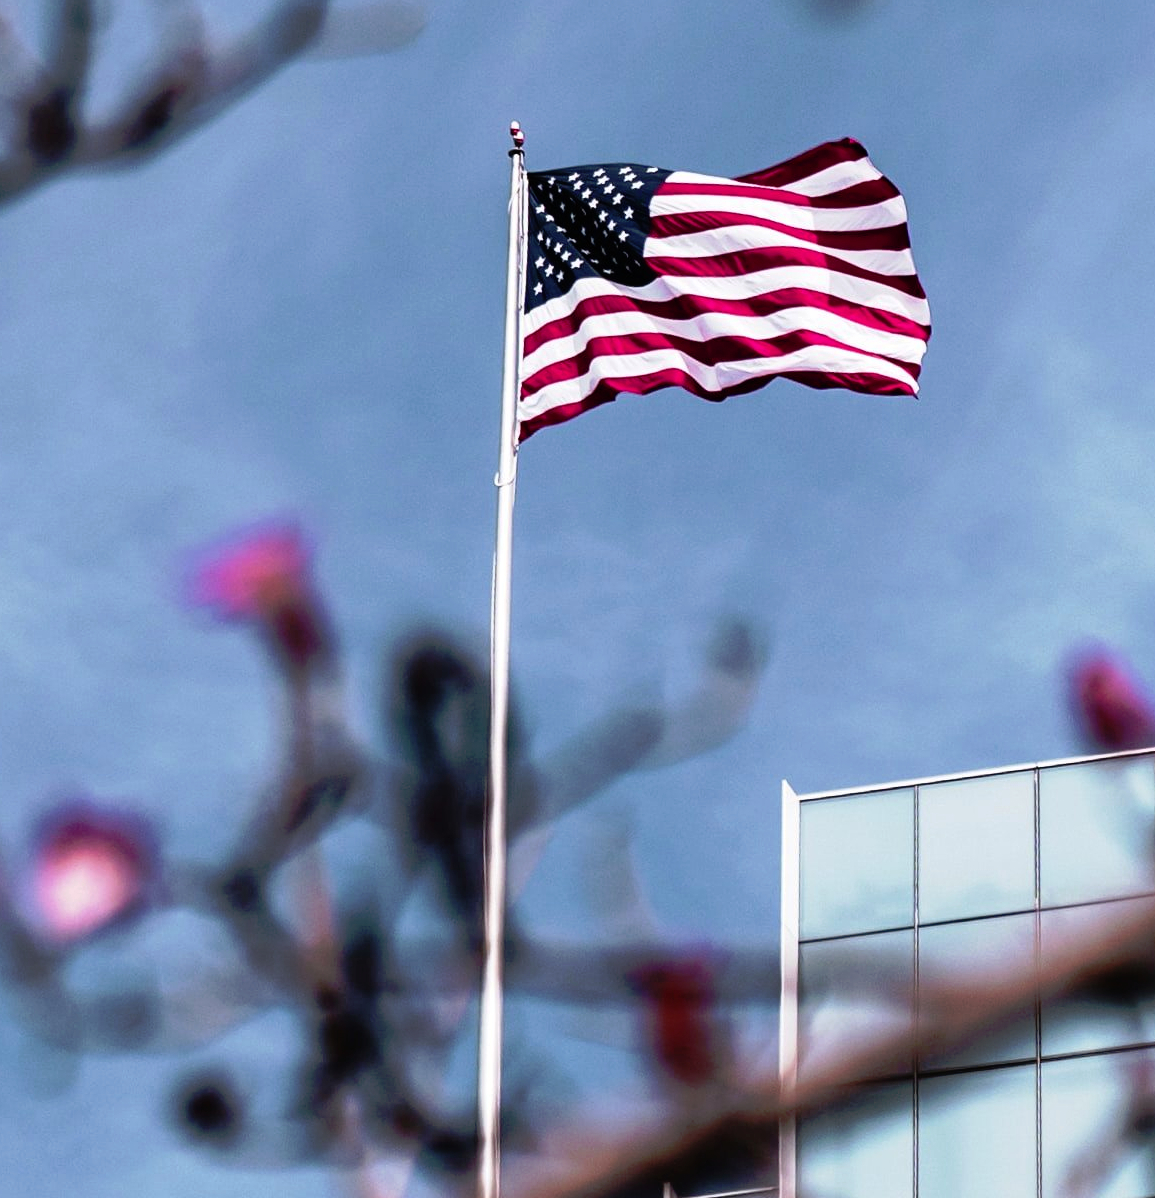 American Flag proudly waving against backdrop of bare cherry blossoms